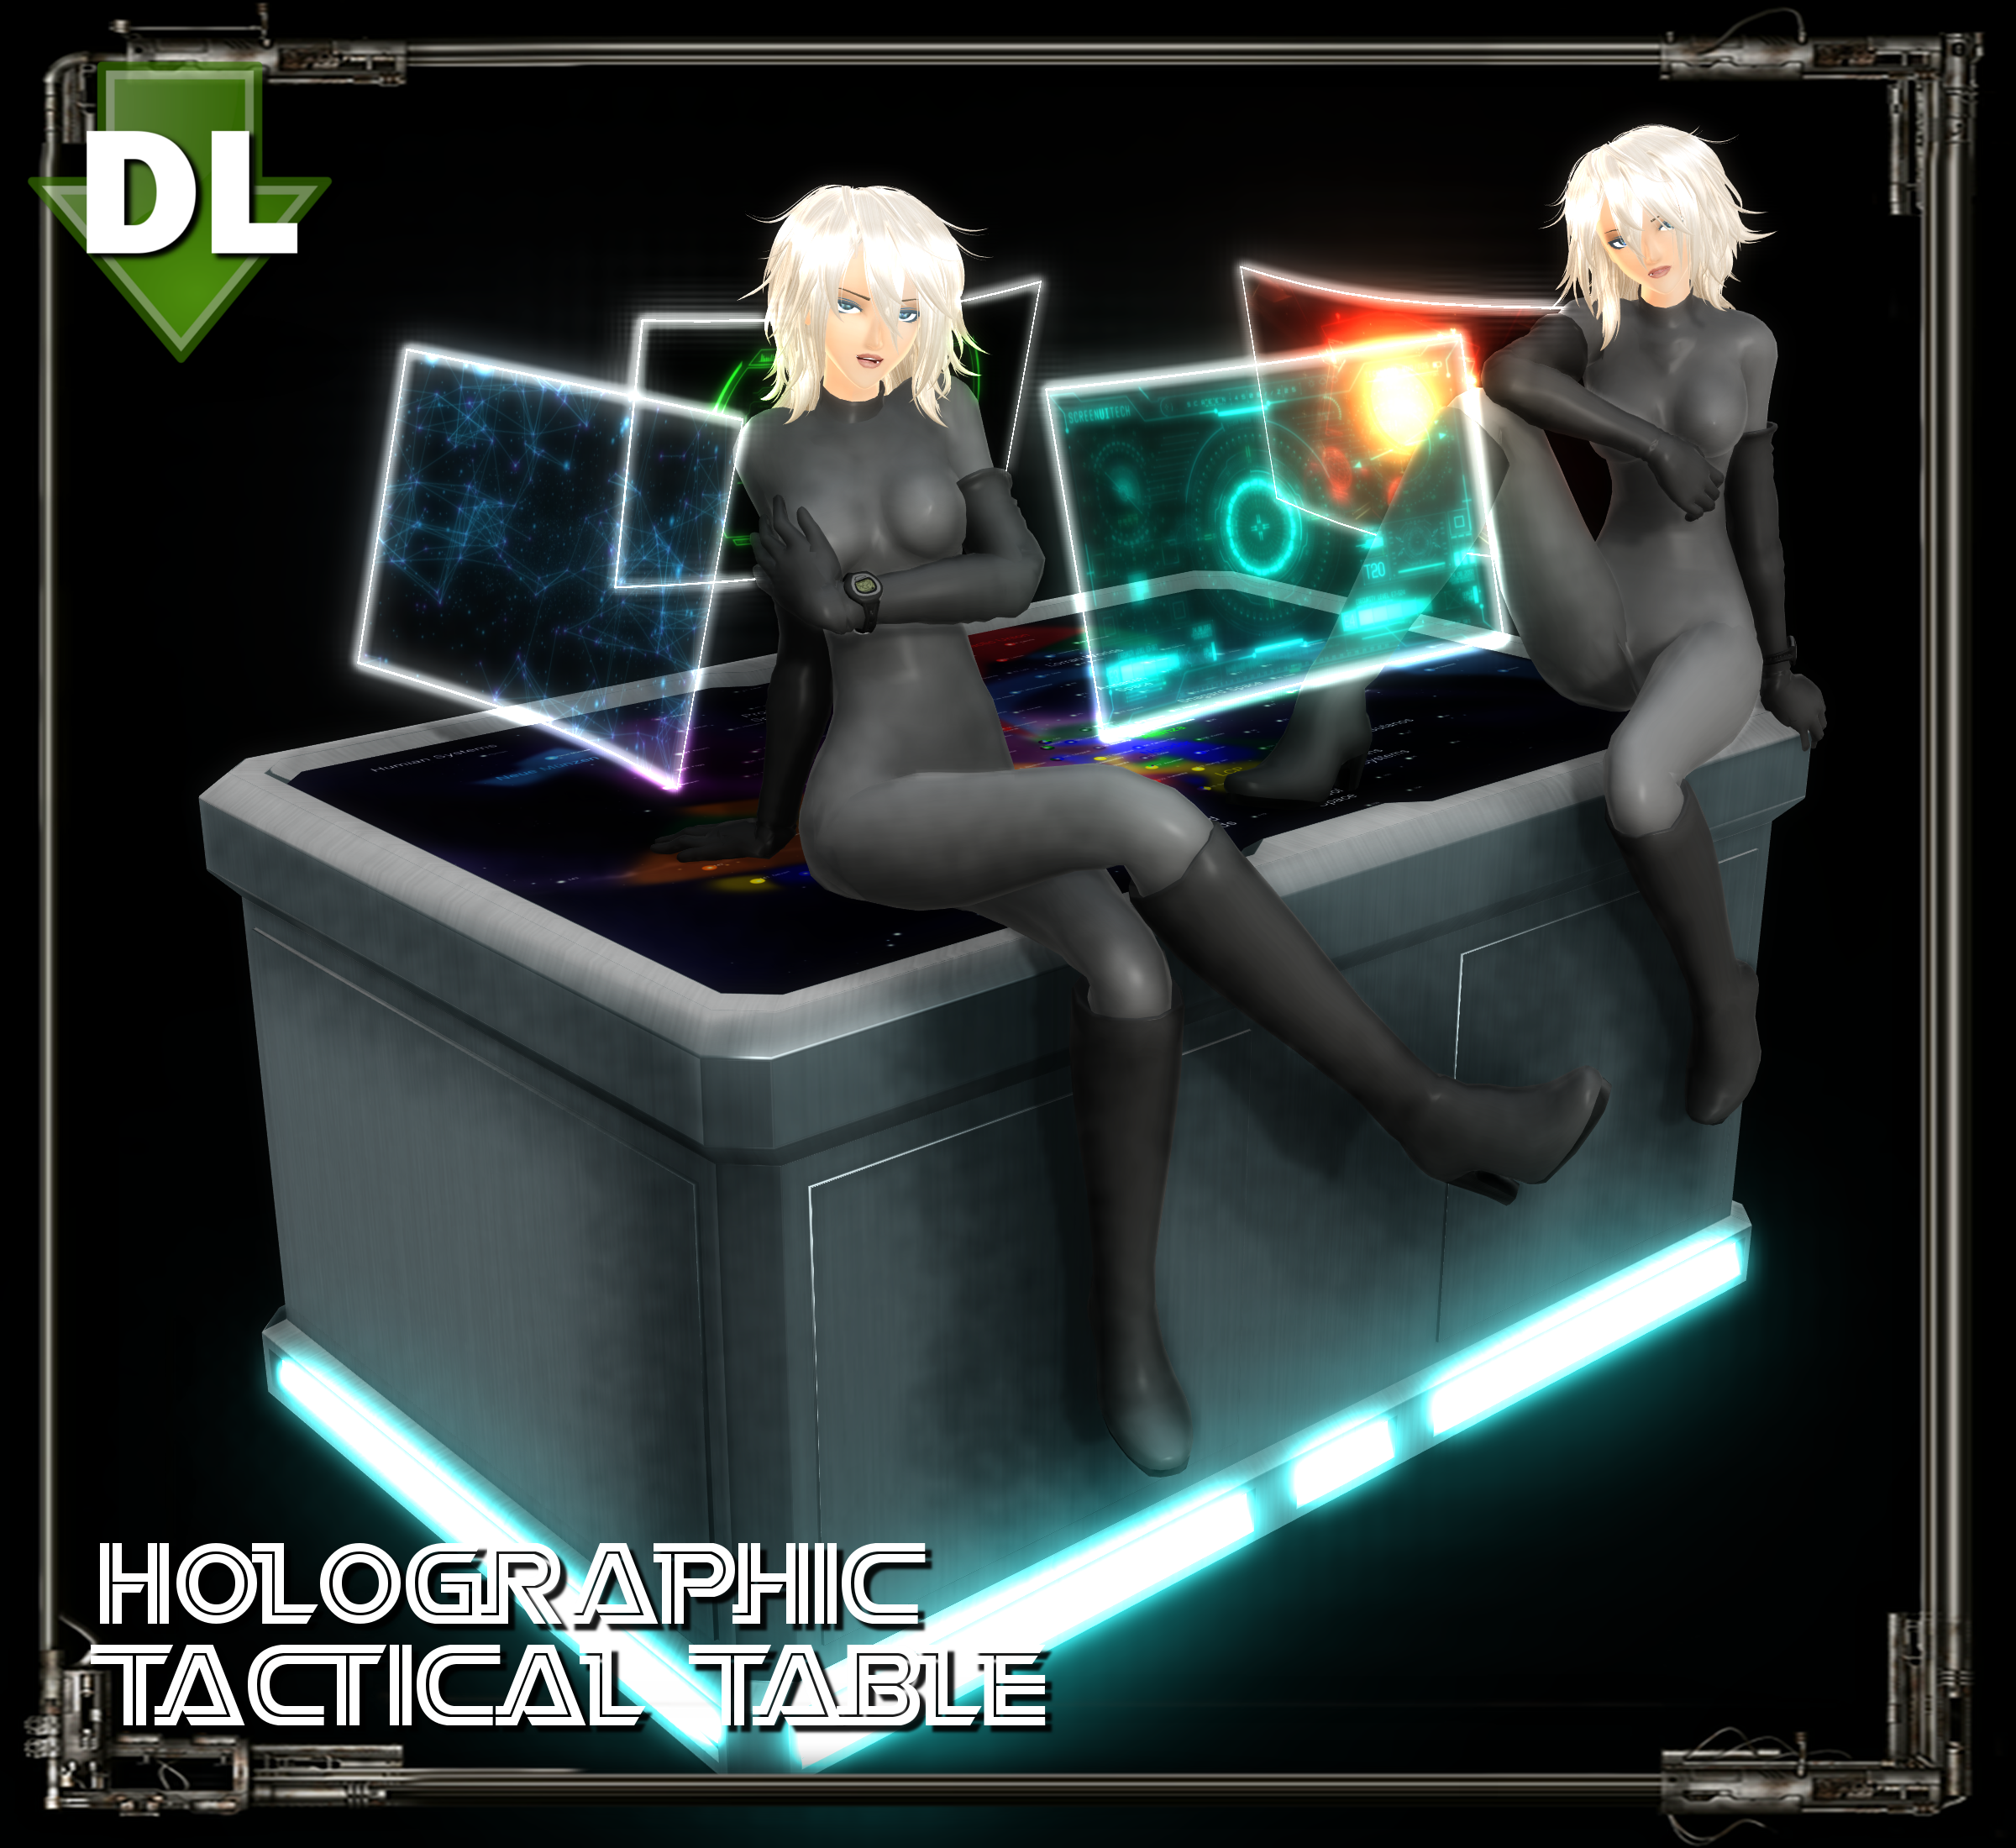 Ikea Stampe Da Muro mmd] holo-tactical table dl (pmx + obj) by riveda1972 on